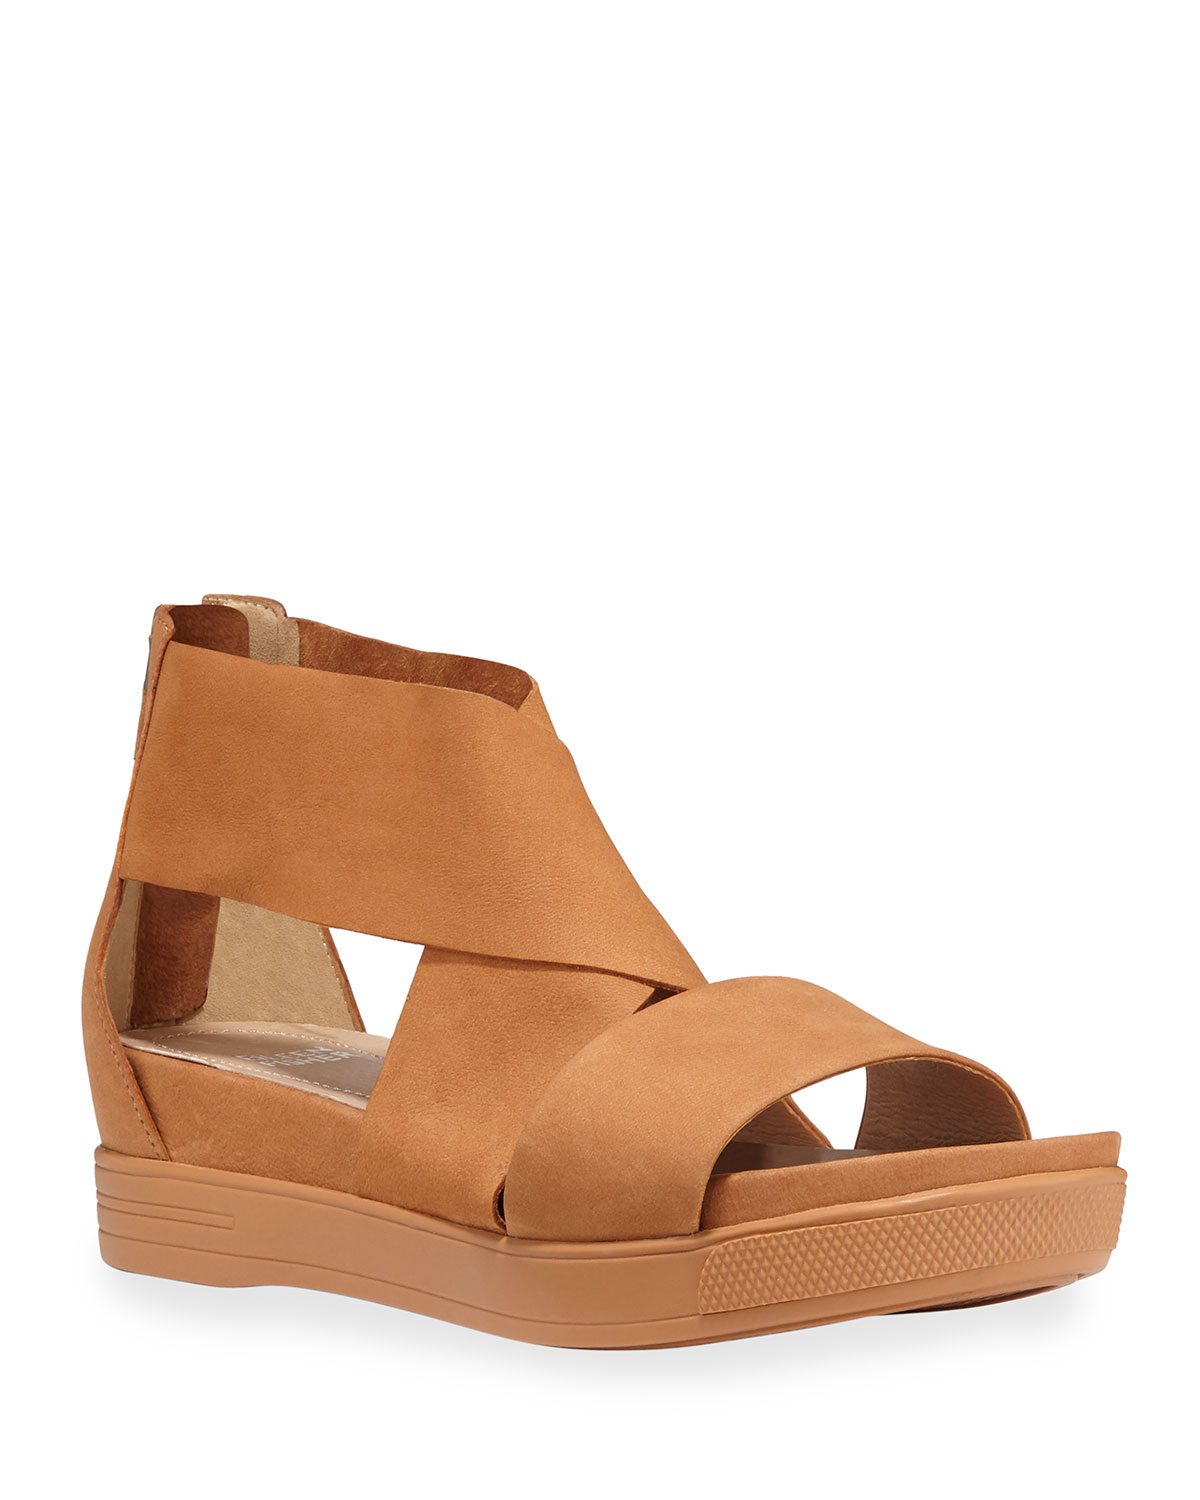 Sport Strappy Leather Sandals